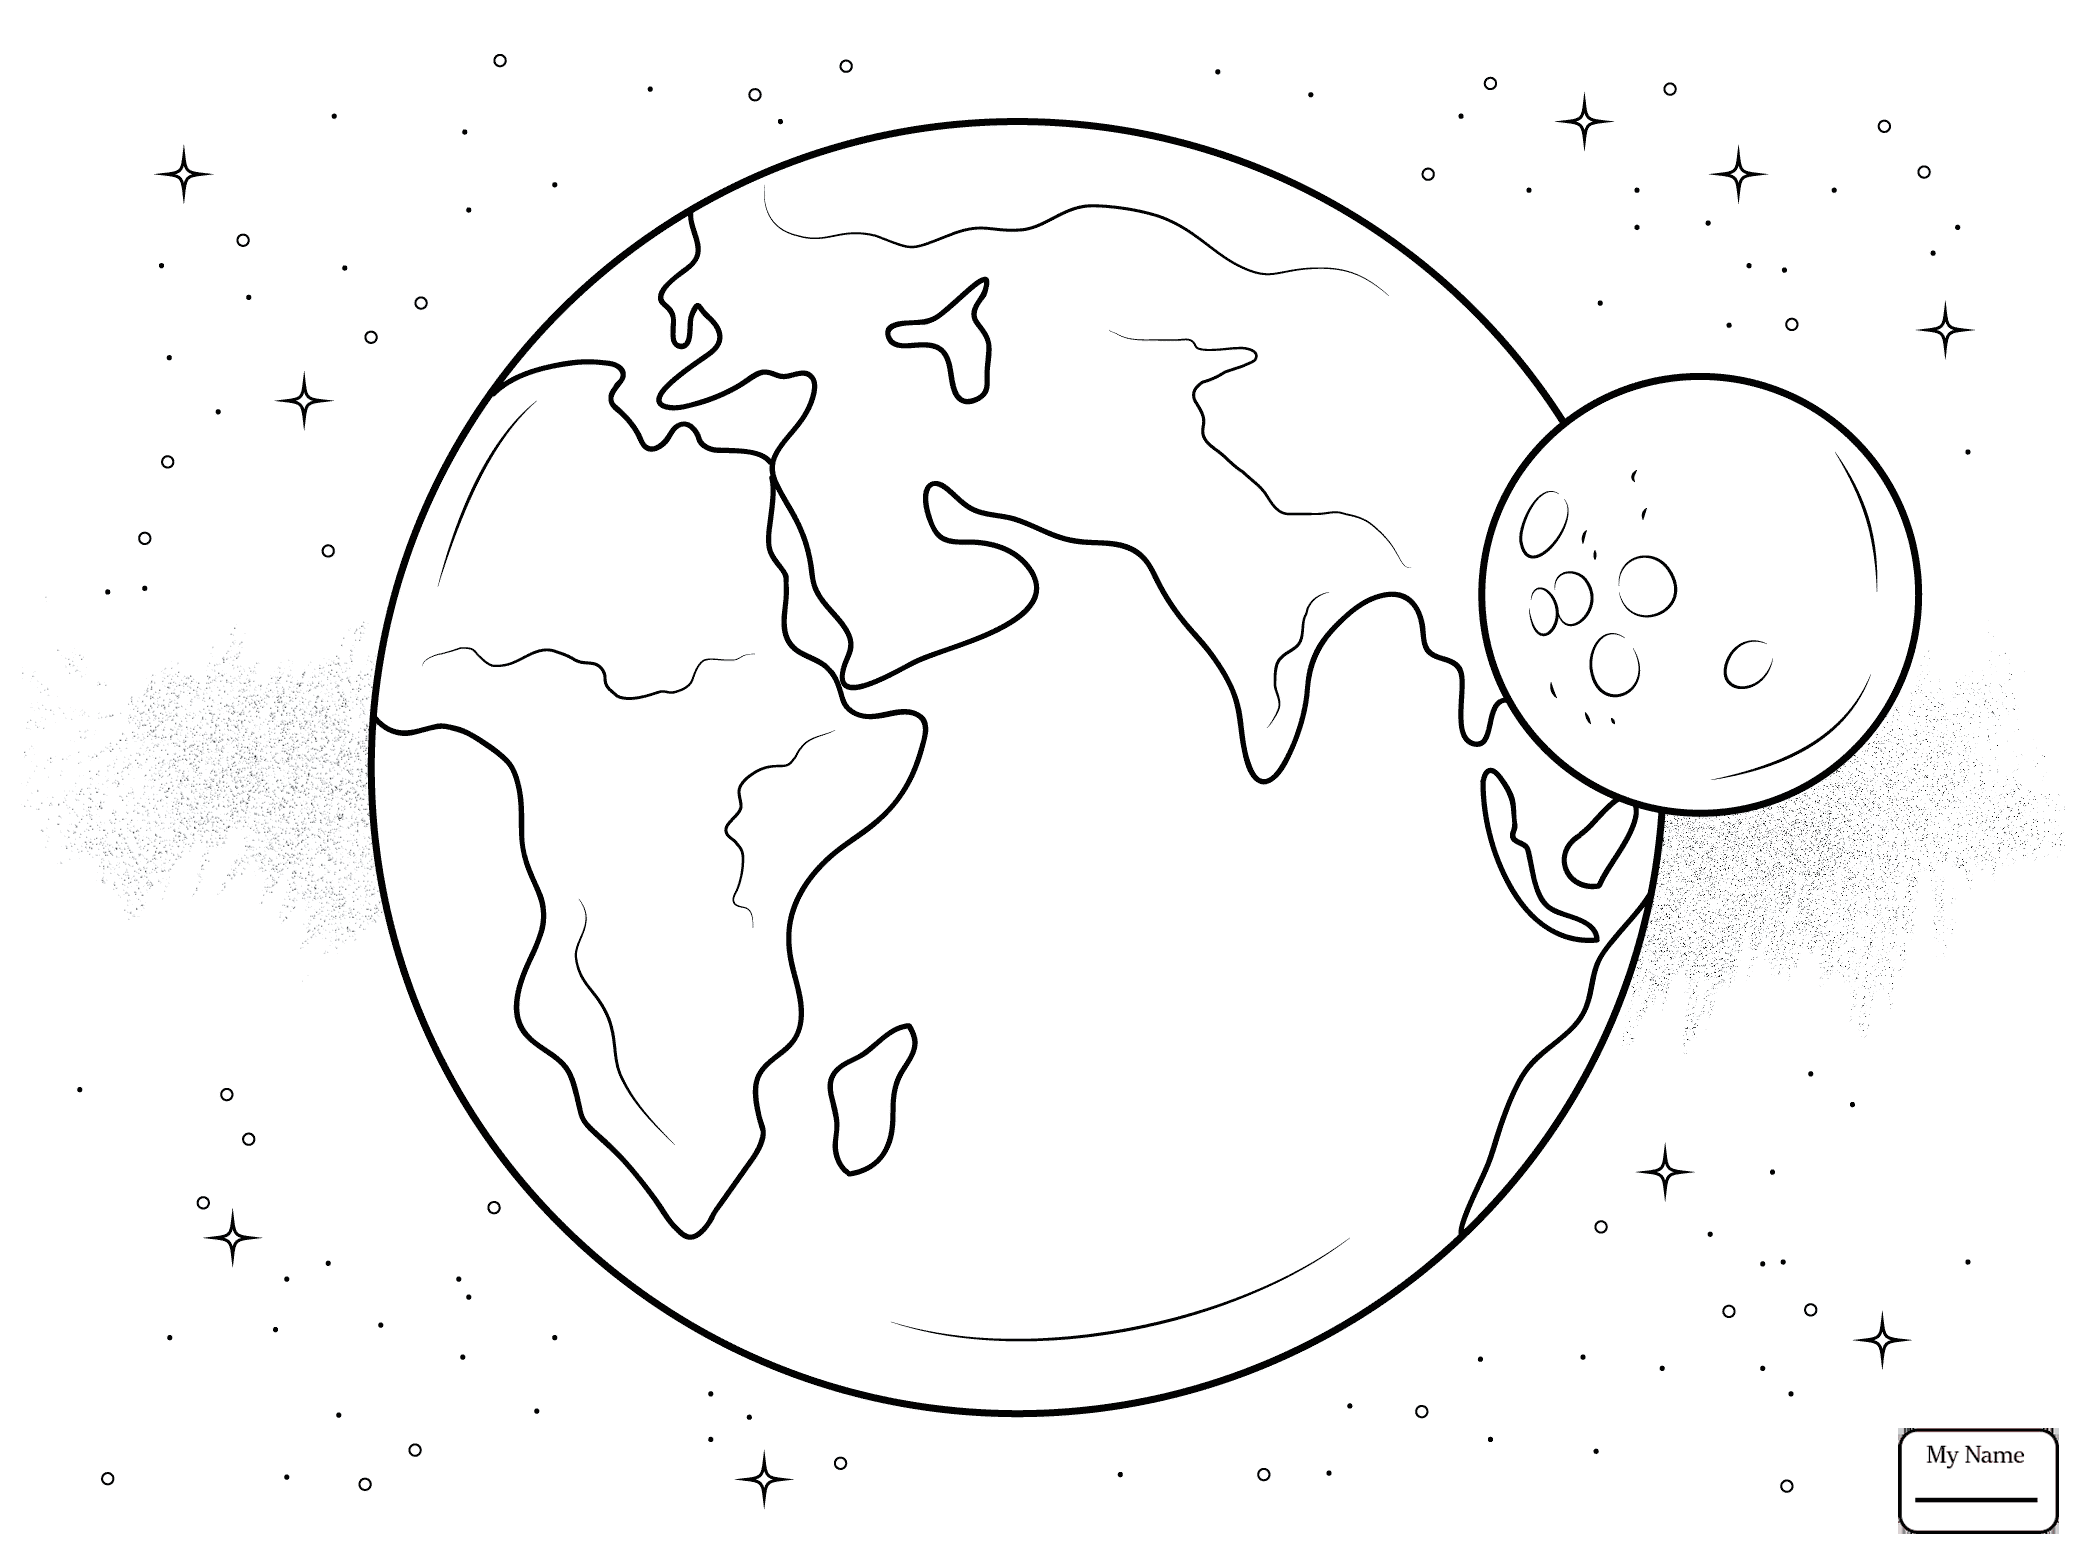 2087x1557 Coloring Pages Space Astronomy Cartoon Earth Character Planets